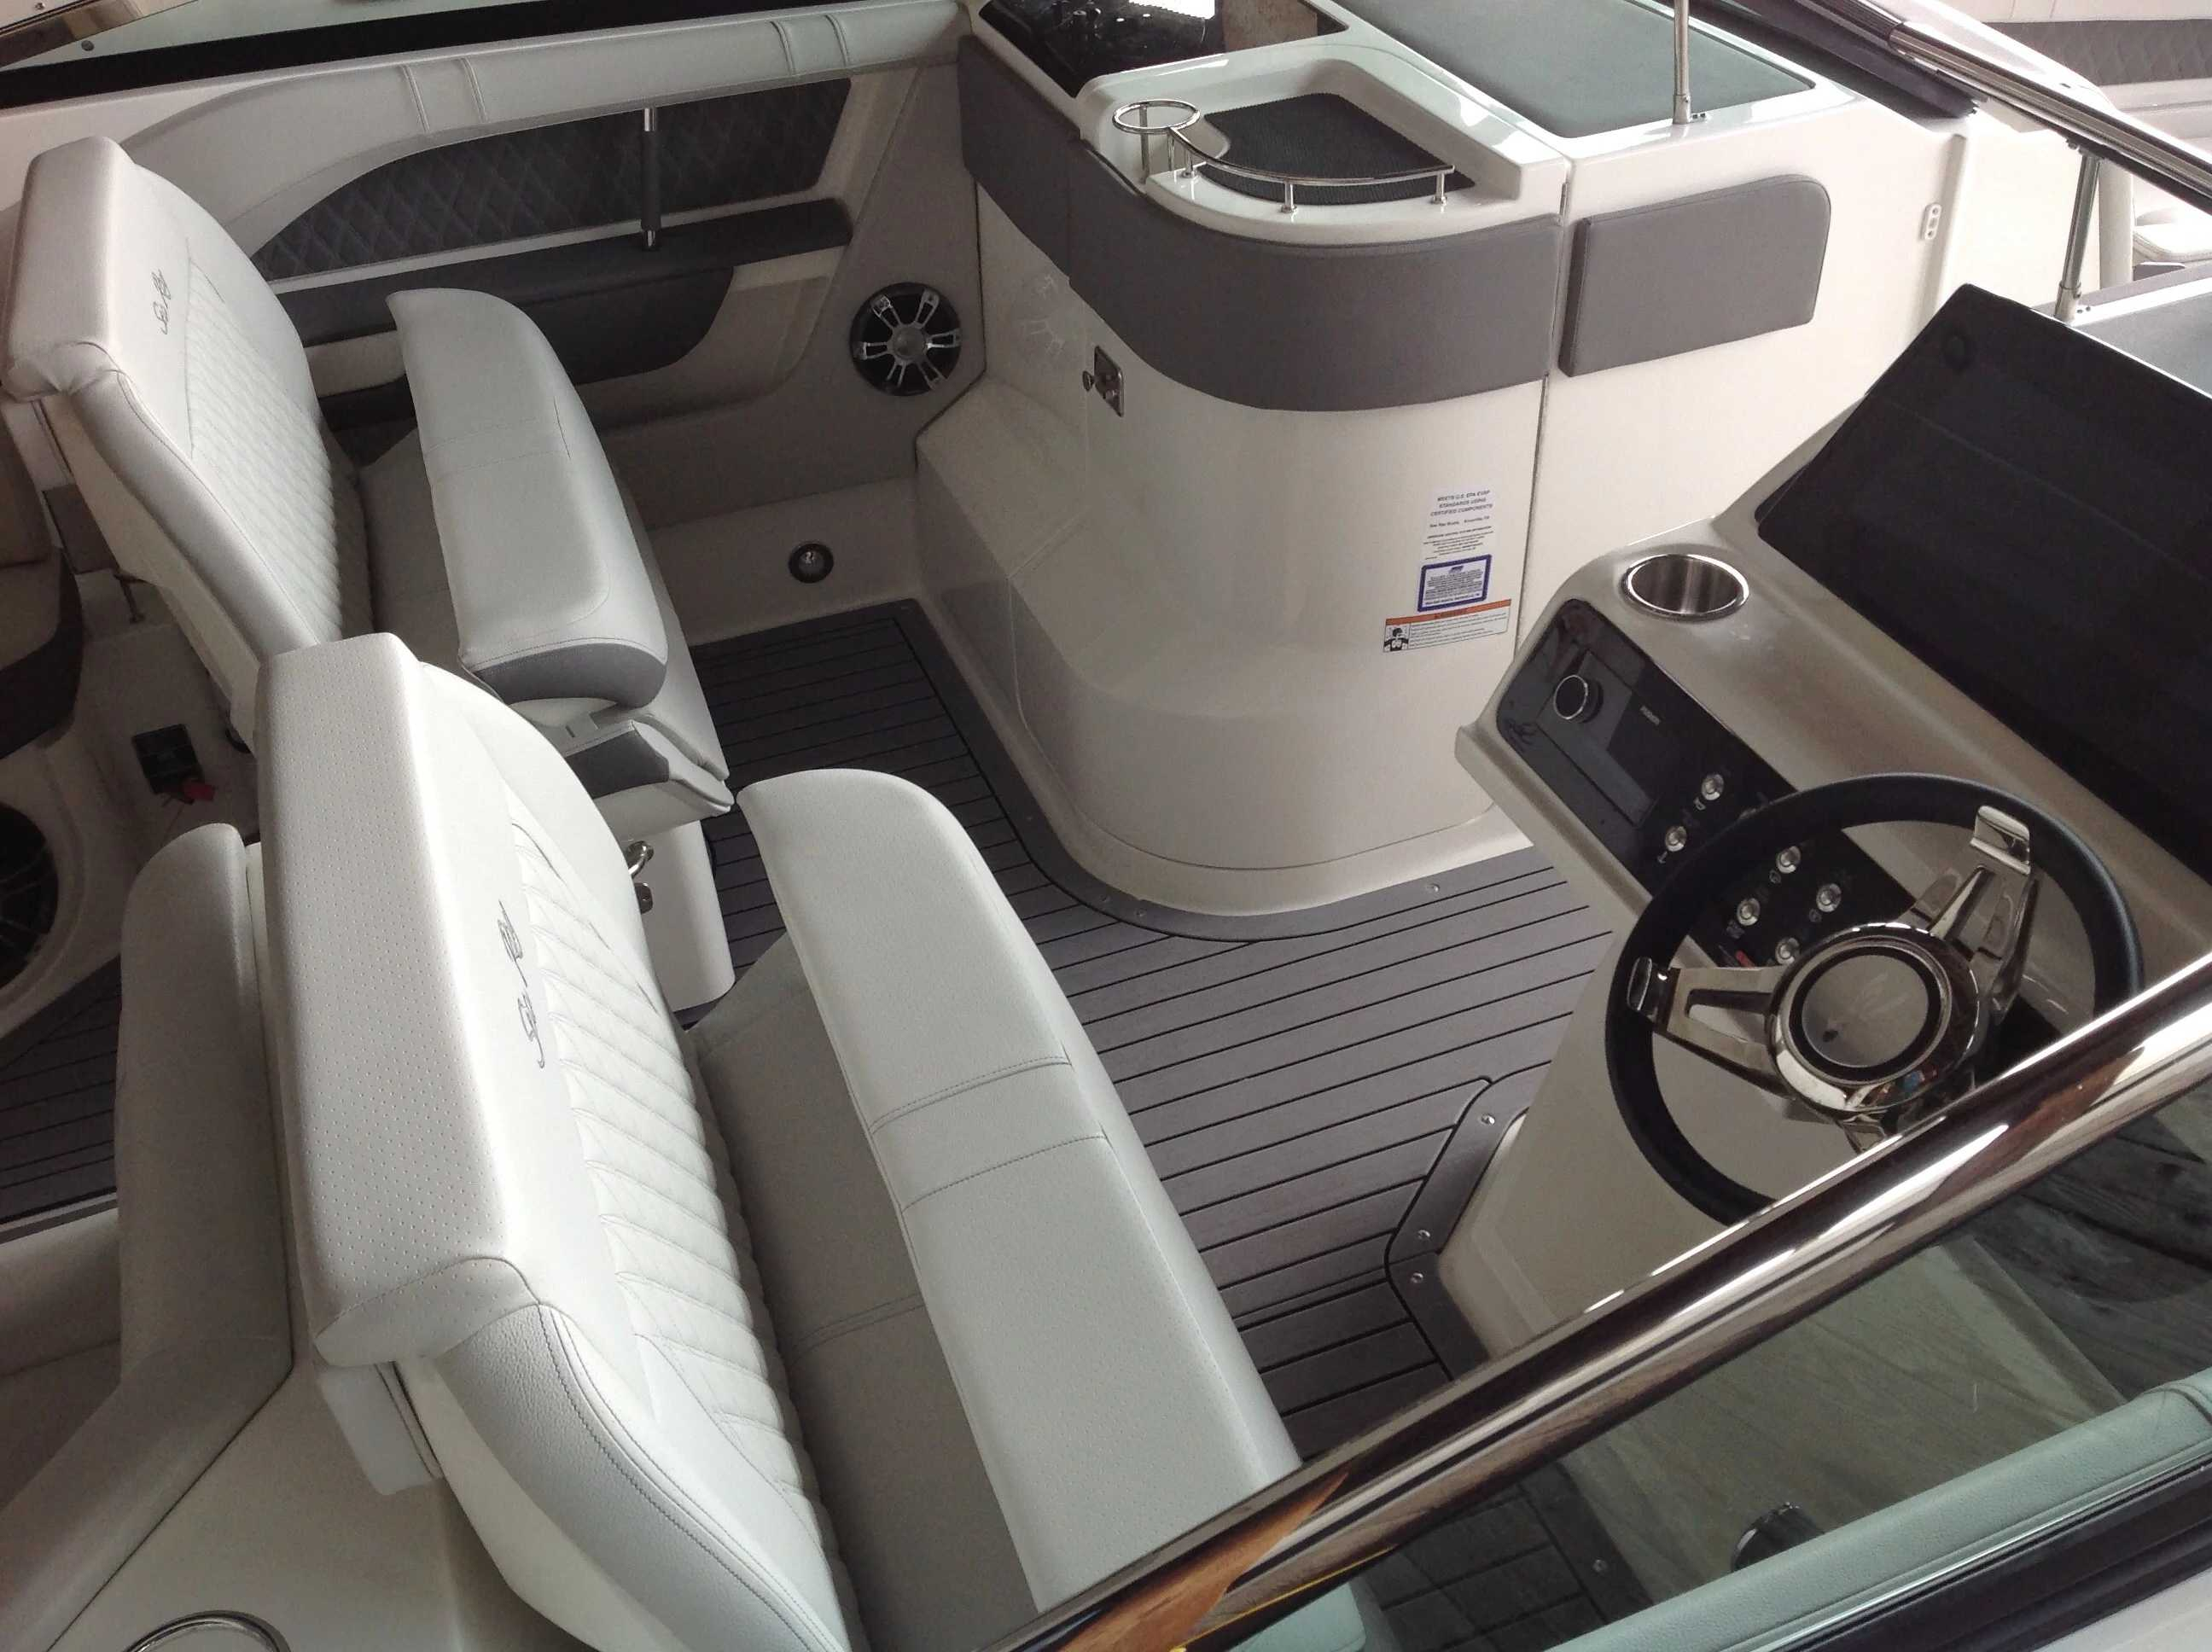 2021 Sea Ray boat for sale, model of the boat is 310 SLX & Image # 9 of 20